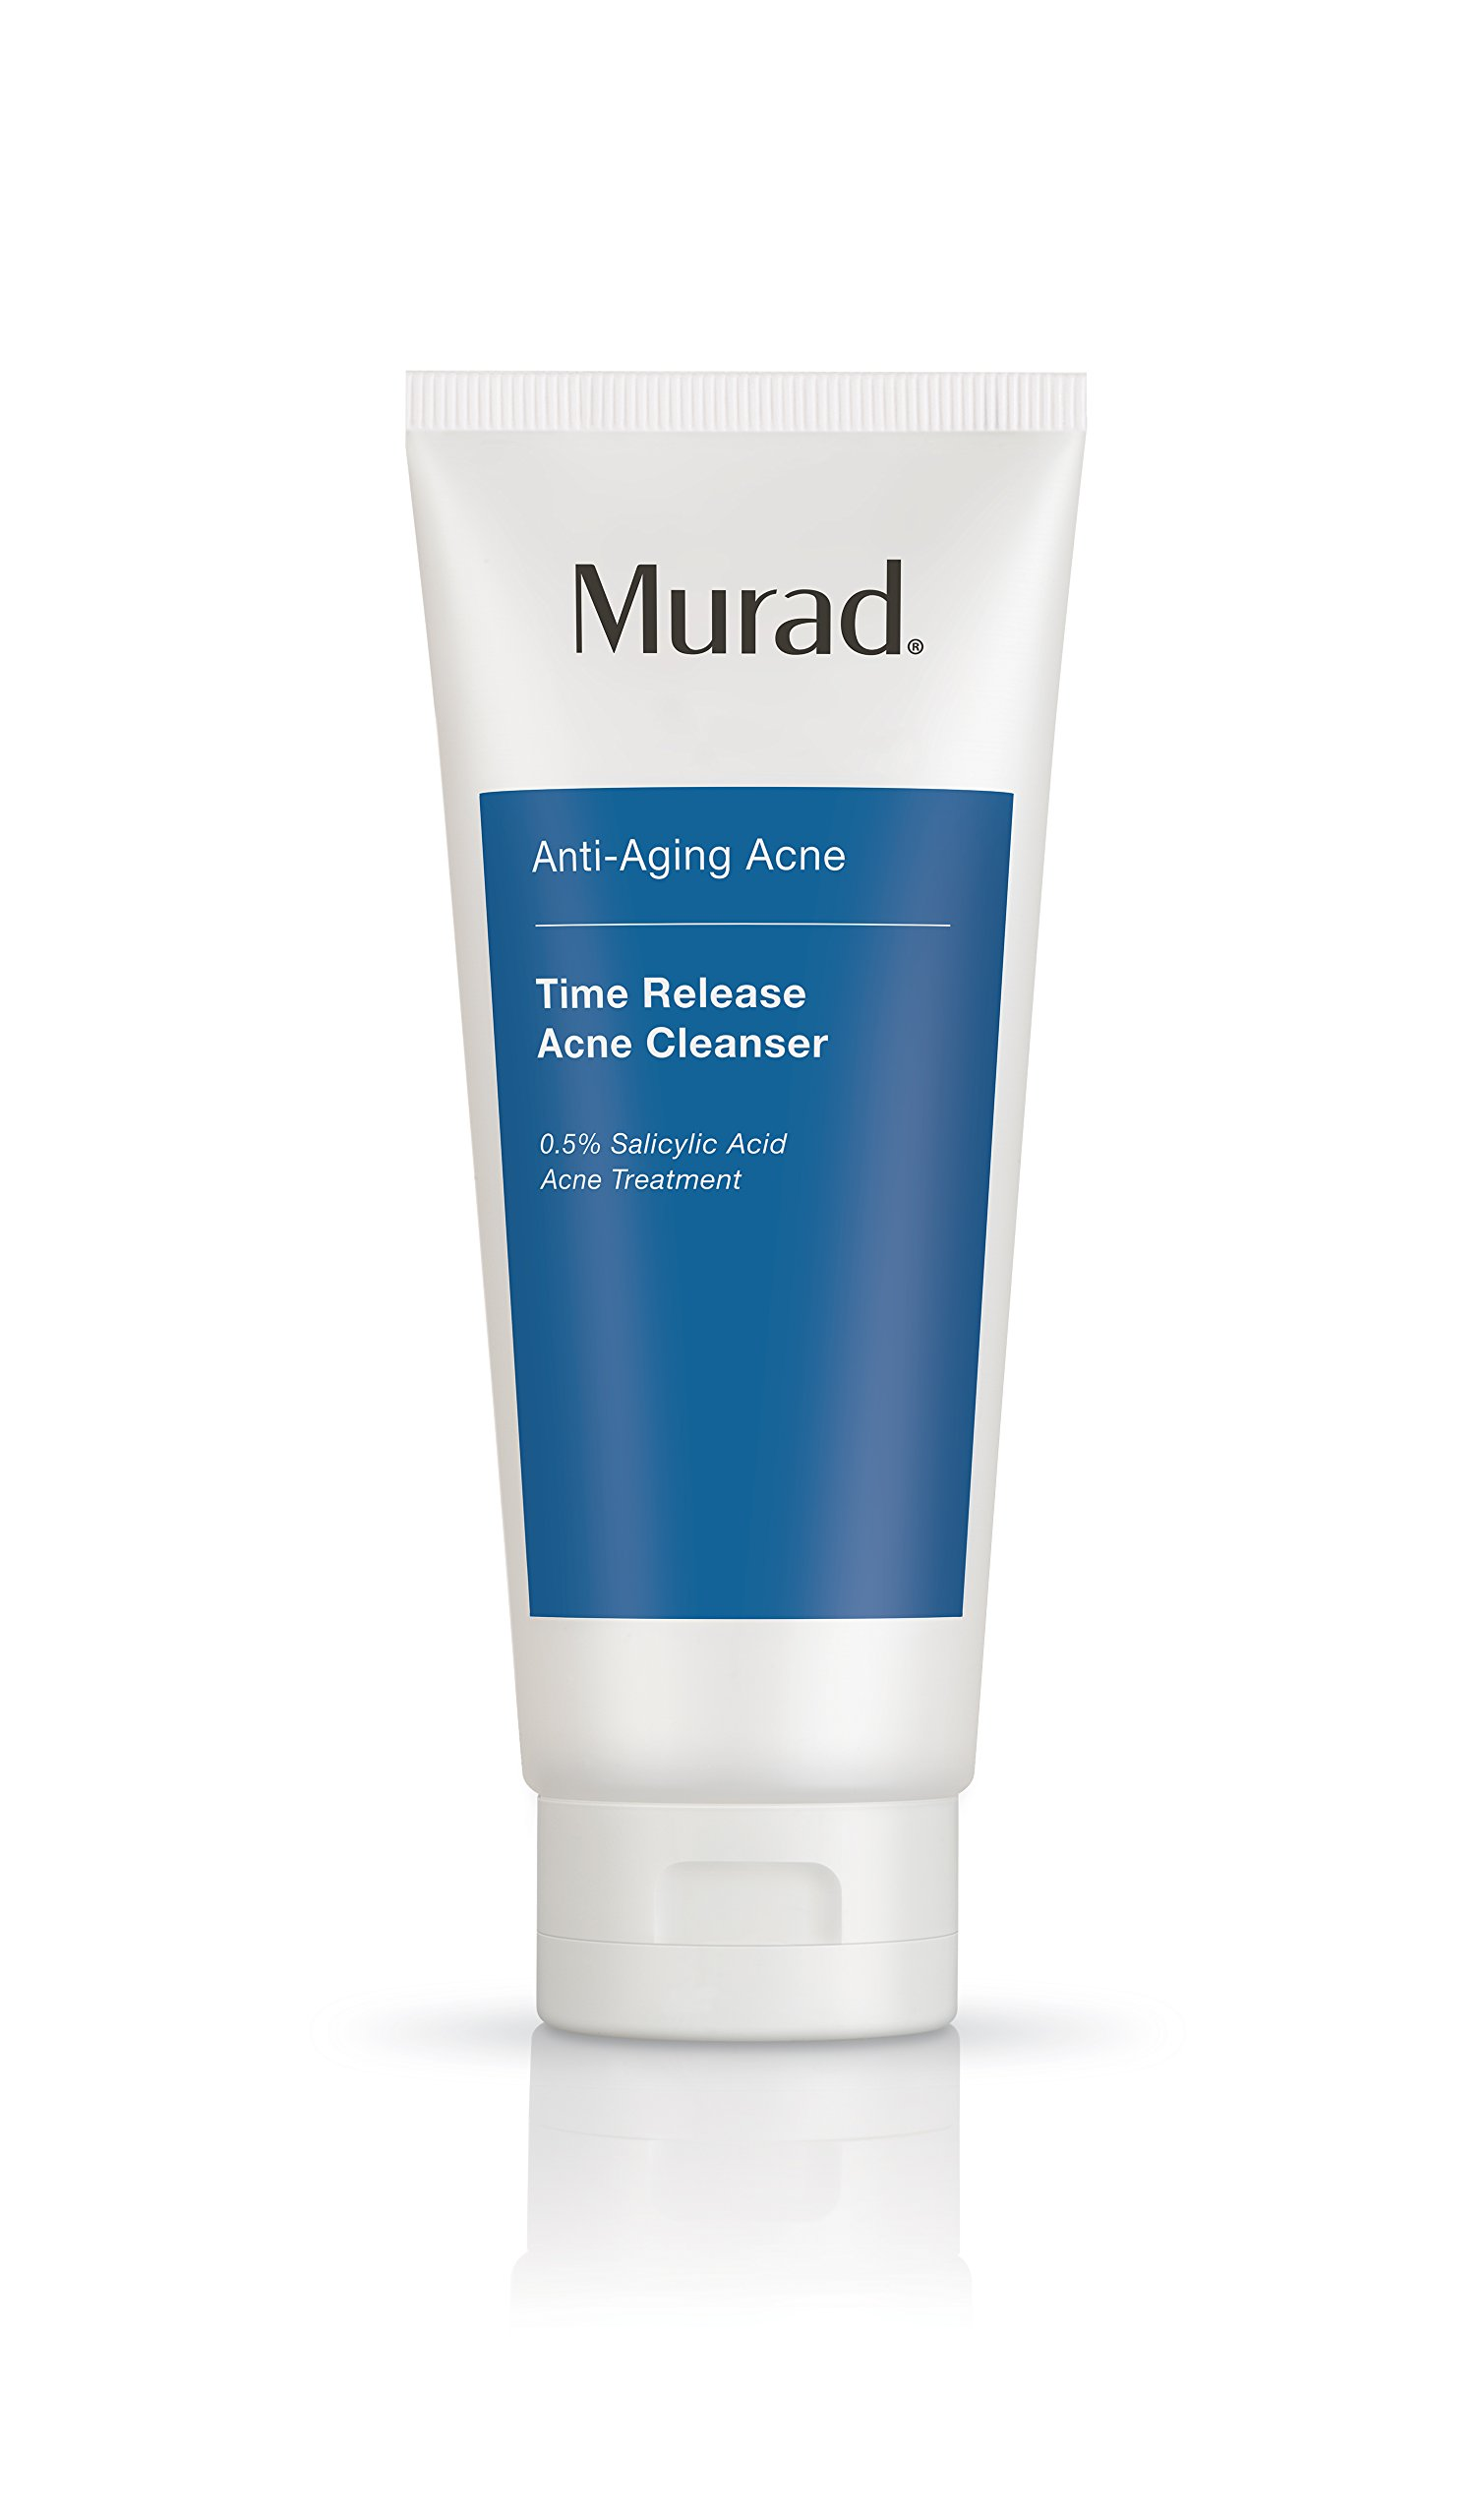 Murad Time Release Acne Cleanser - (6.75 fl oz), Anti-Aging Acne Cleanser with Sustained-Release 0.5% Salicylic Acid to Fight Acne All Day and Hydrate Skin without Over-Drying